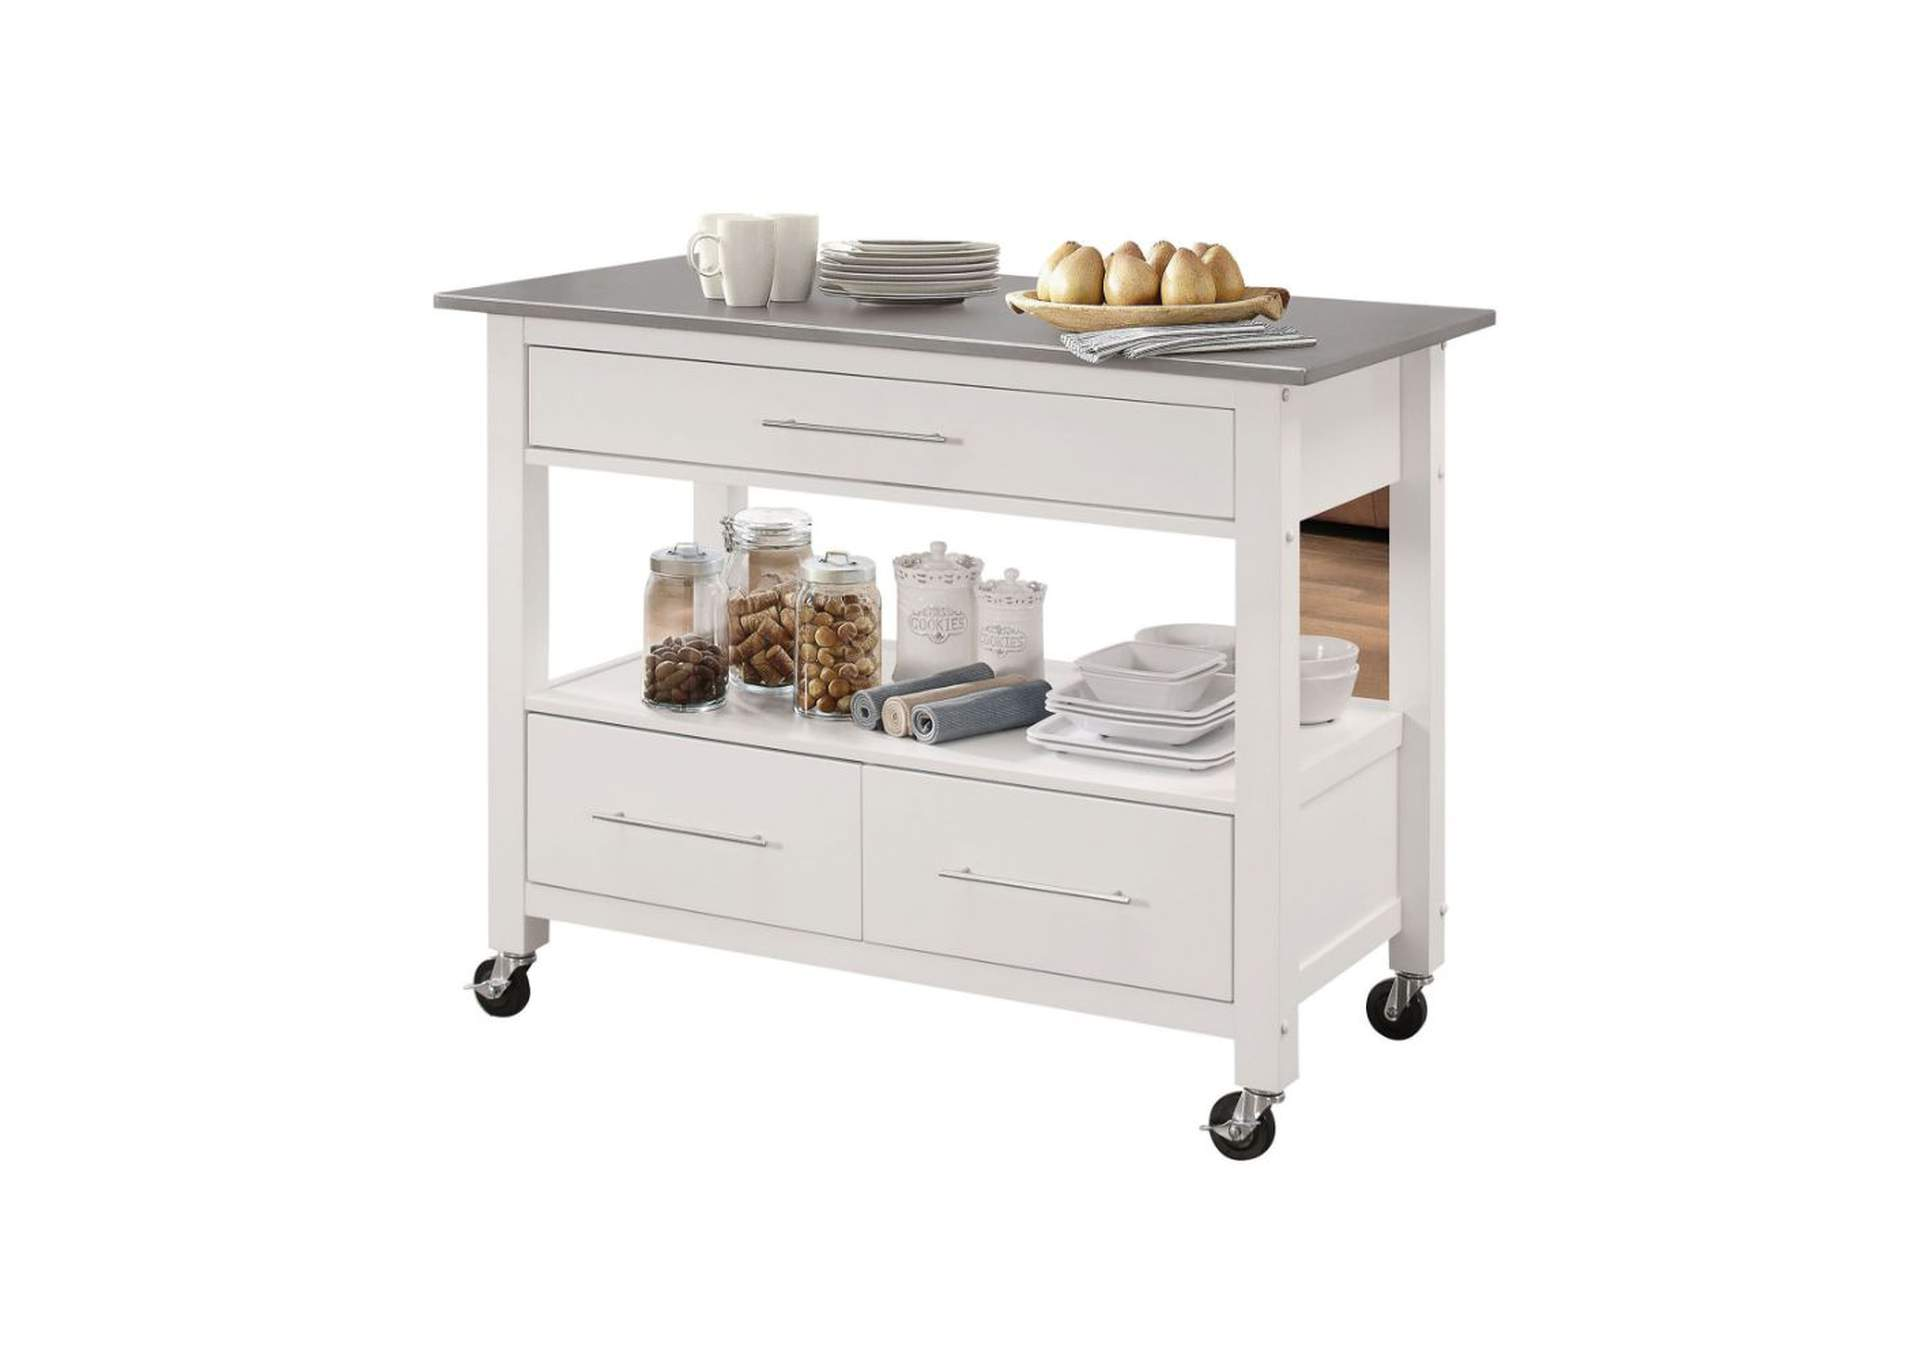 Ottawa Stainless Steel & White Kitchen Cart,Acme